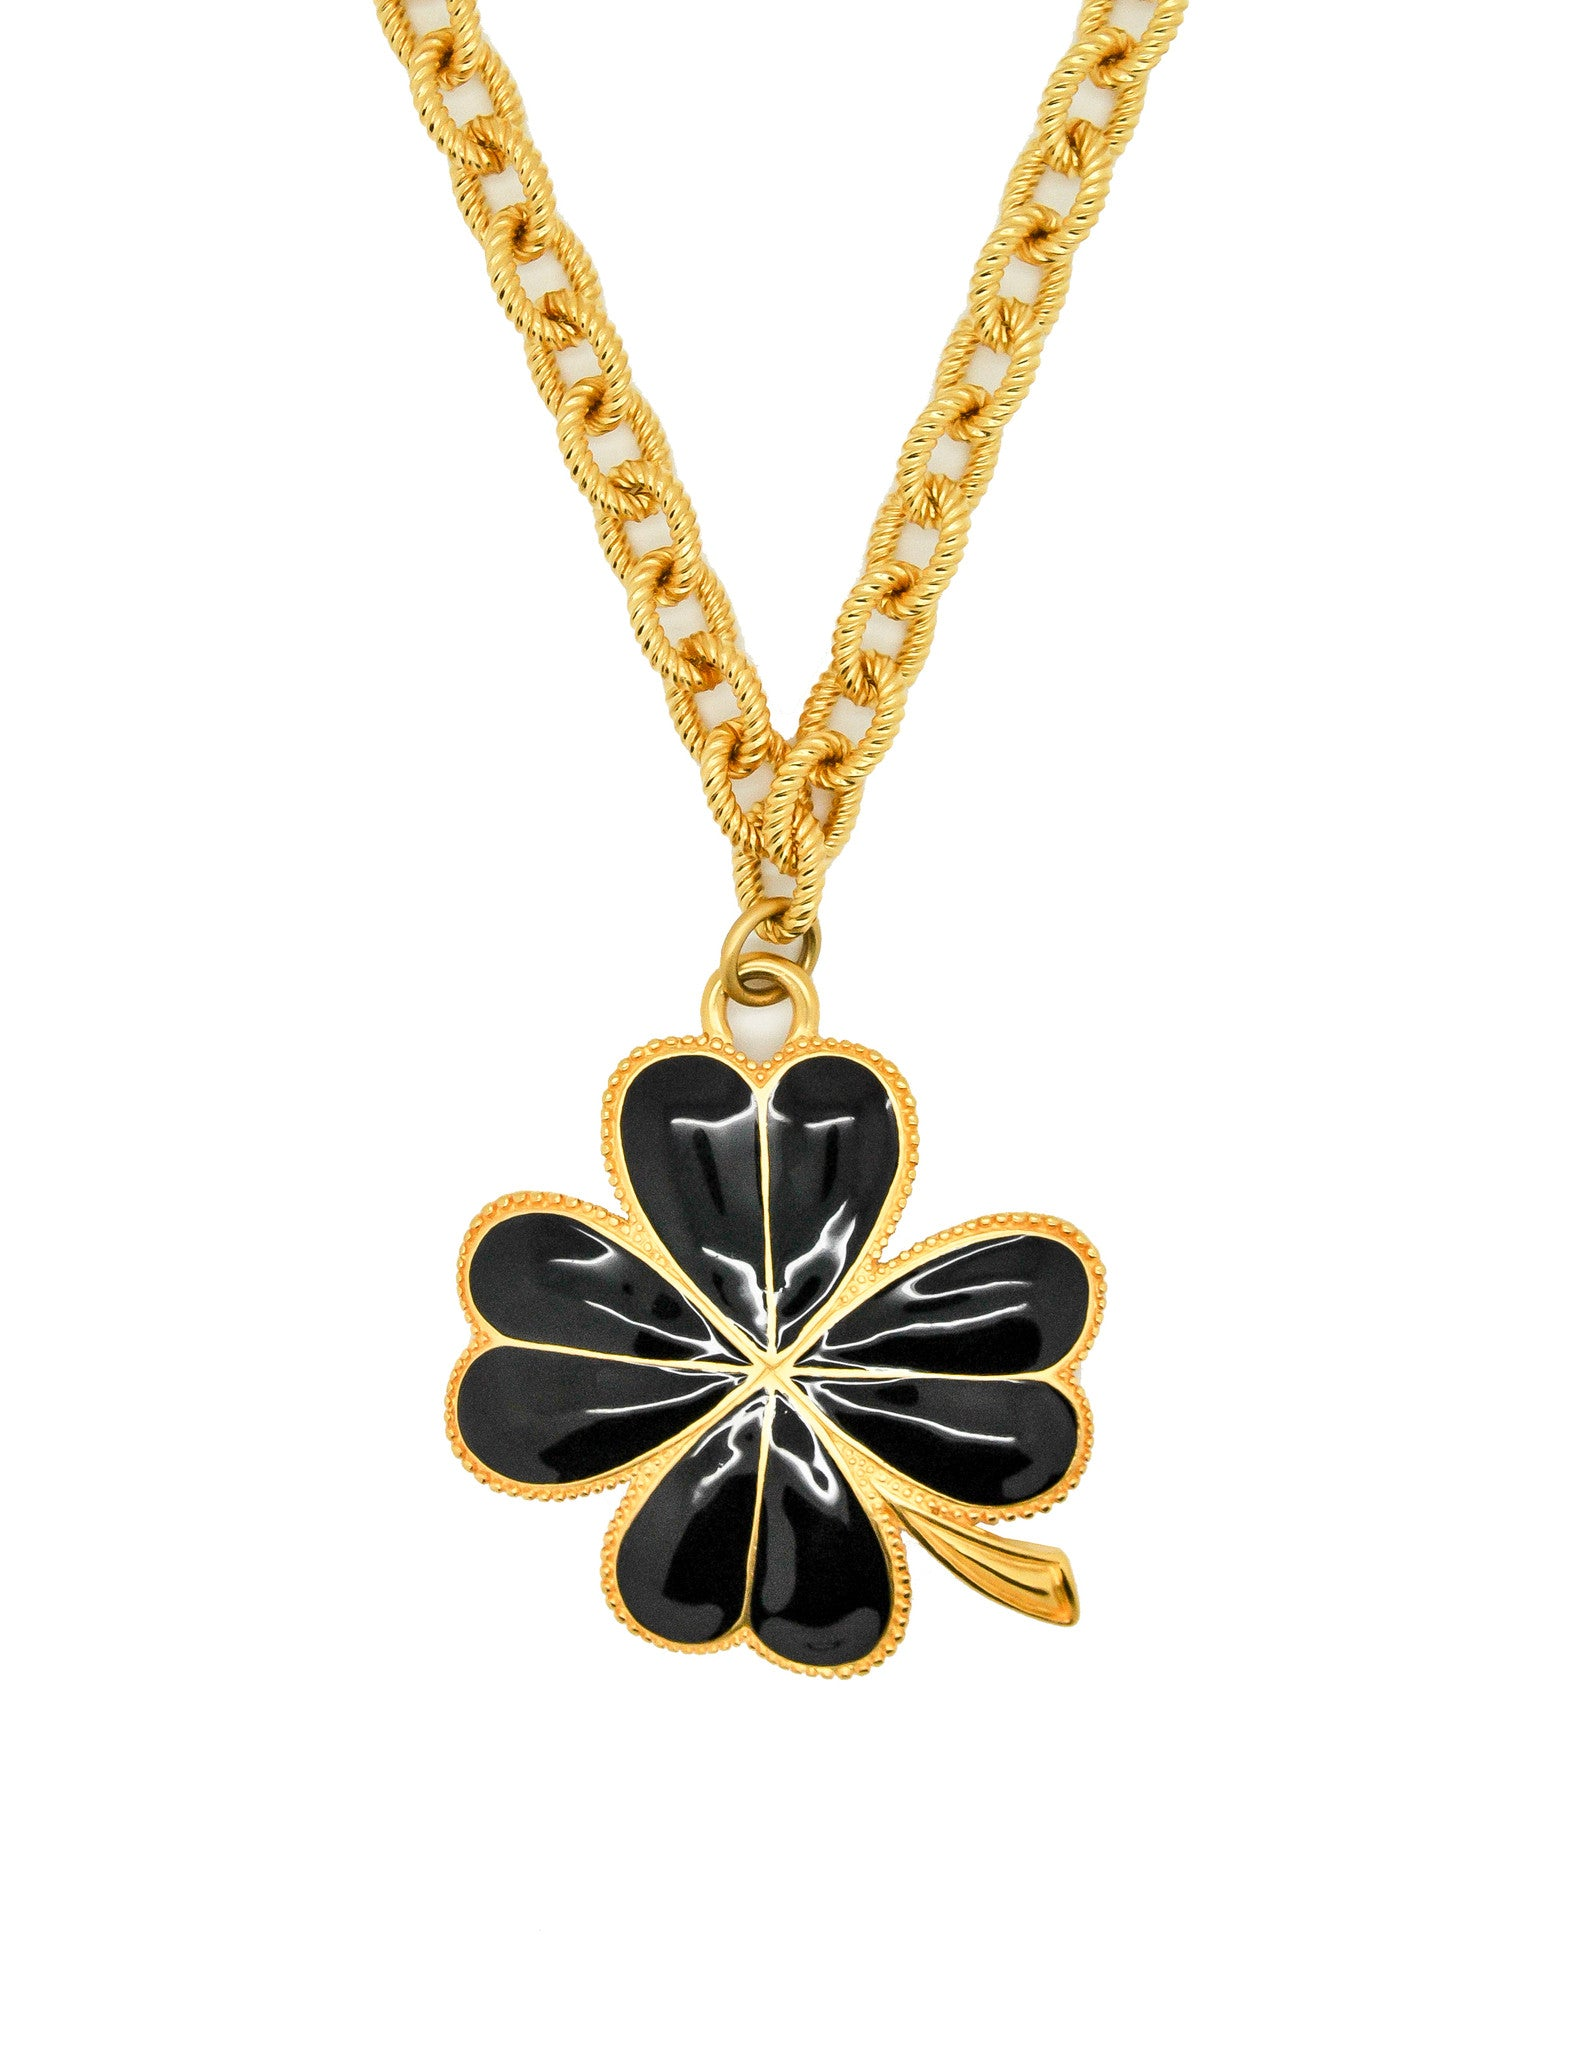 clover lucky silver by or four hersey herseysilversmiths gold product leaf necklace original